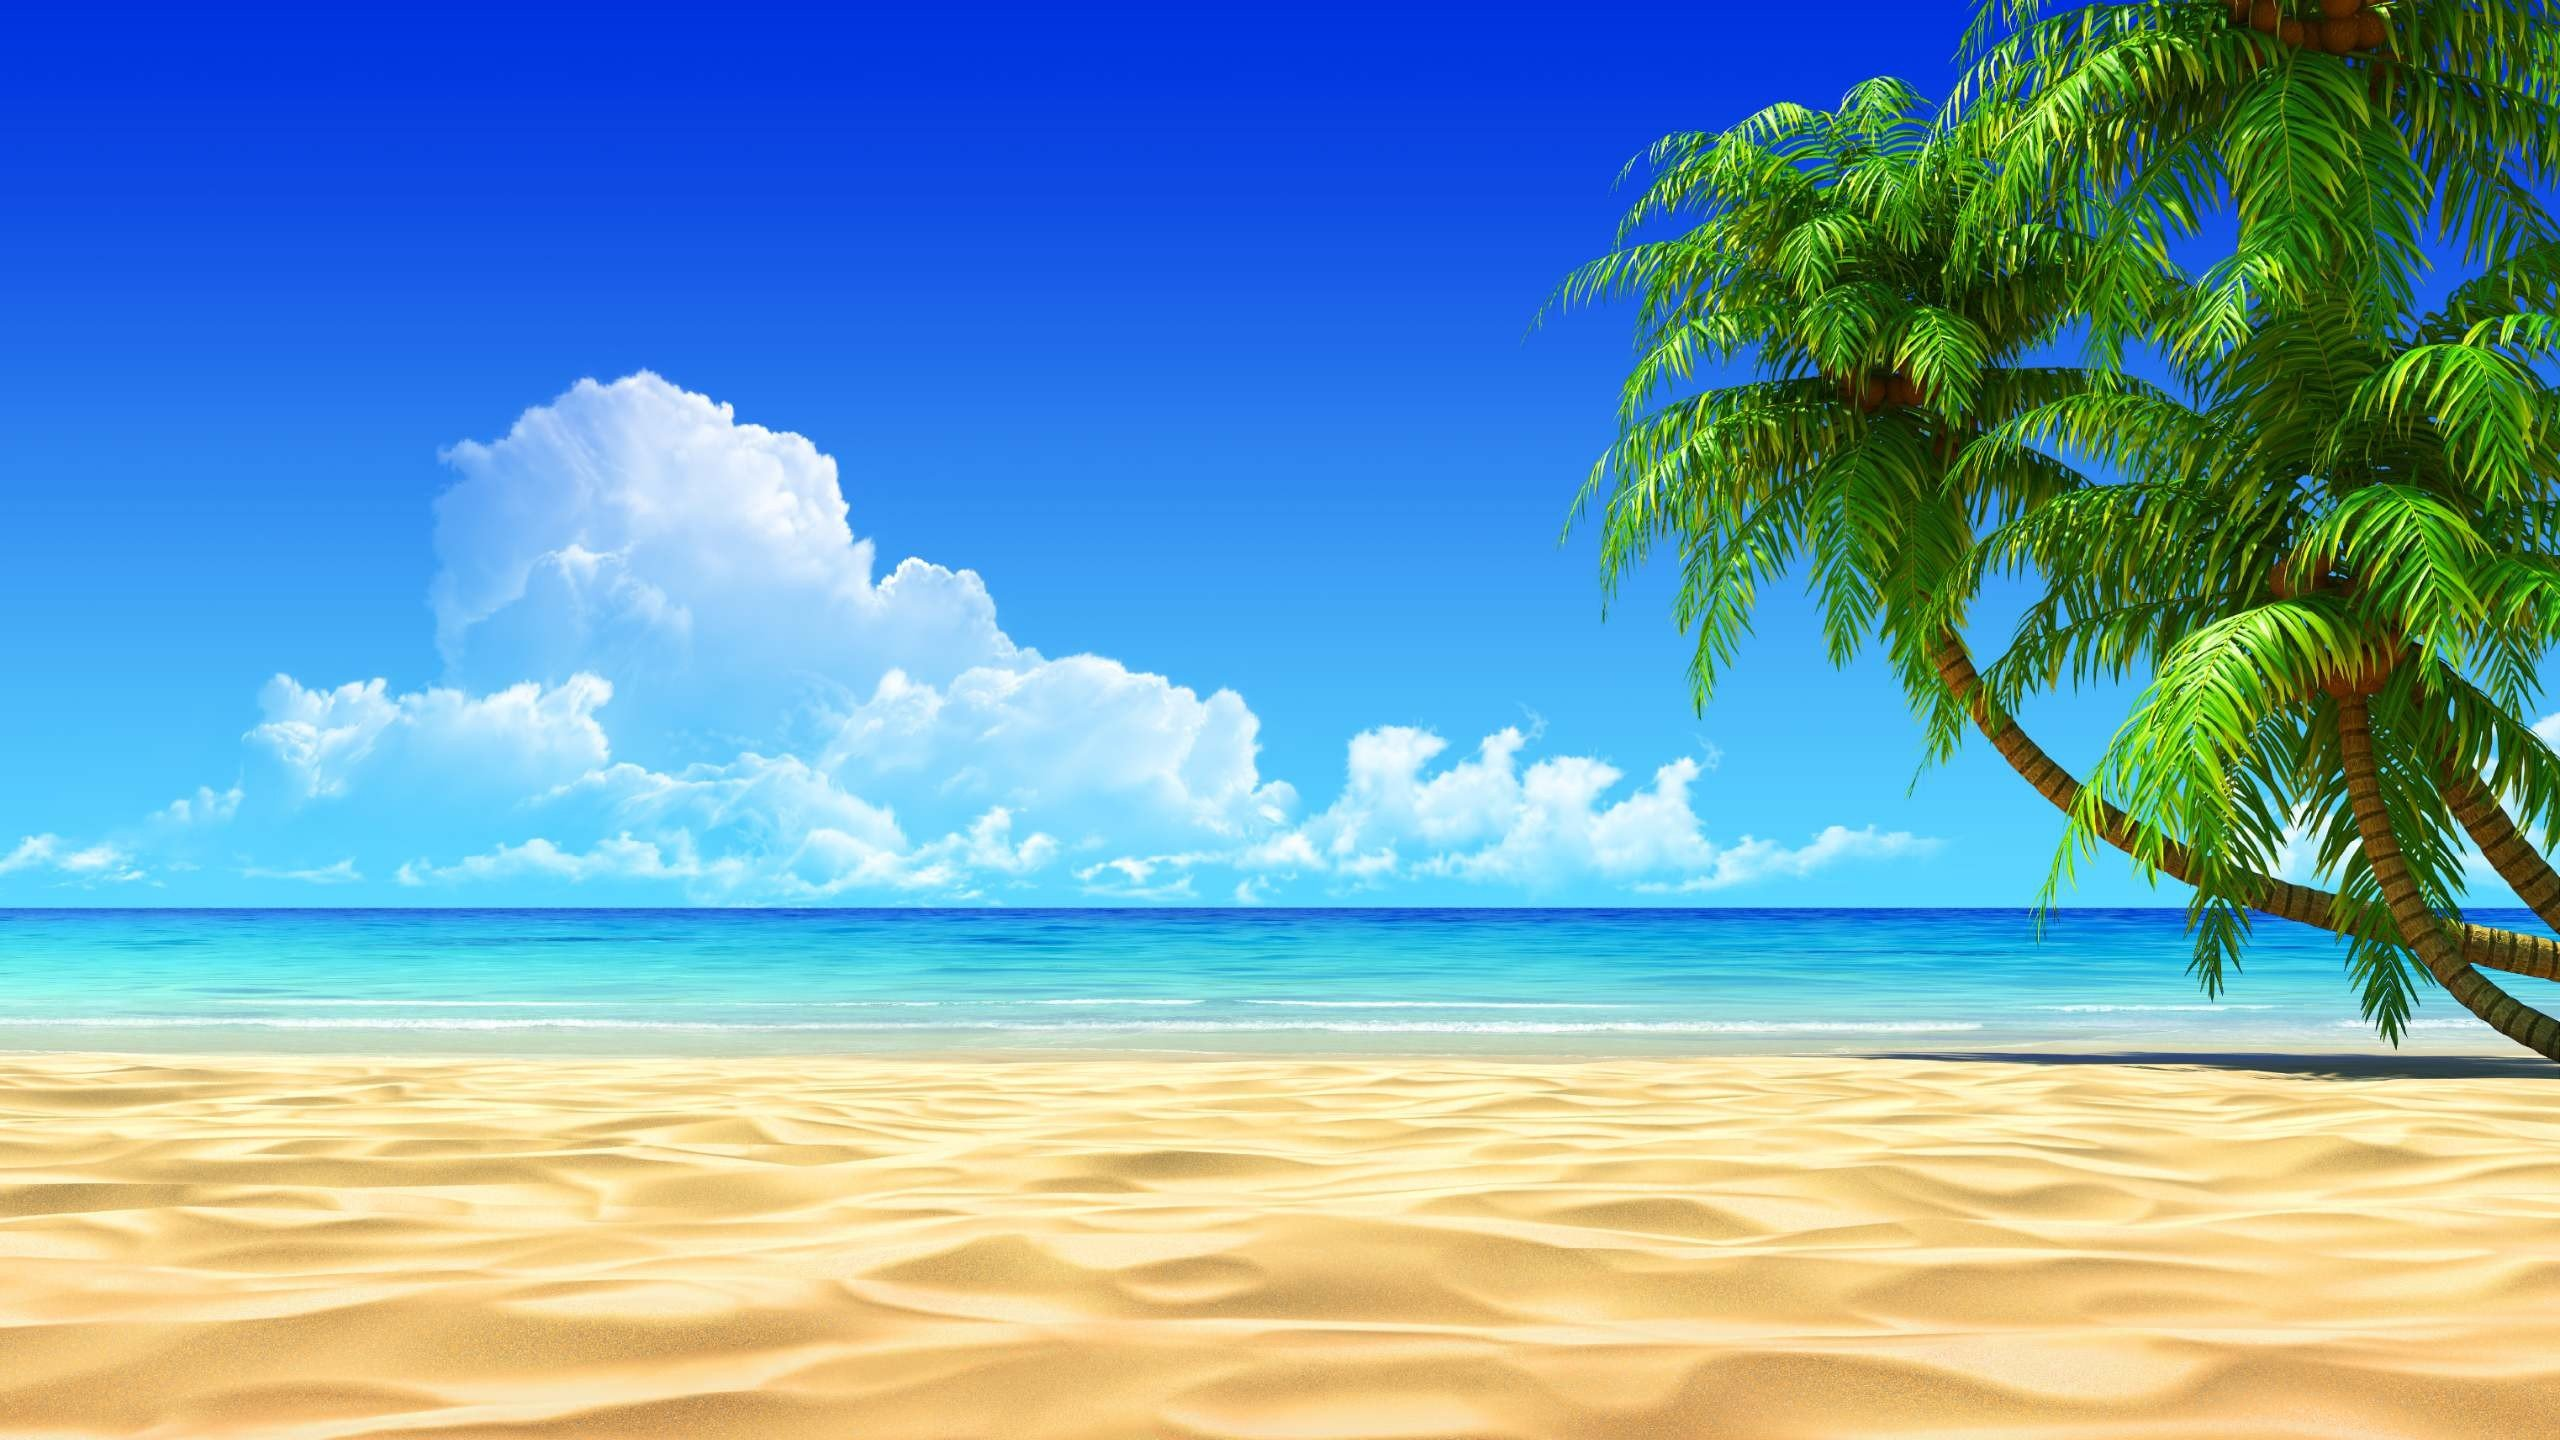 Awesome Tropical Beach Desktop Background HD Wallpaper 2560x1440